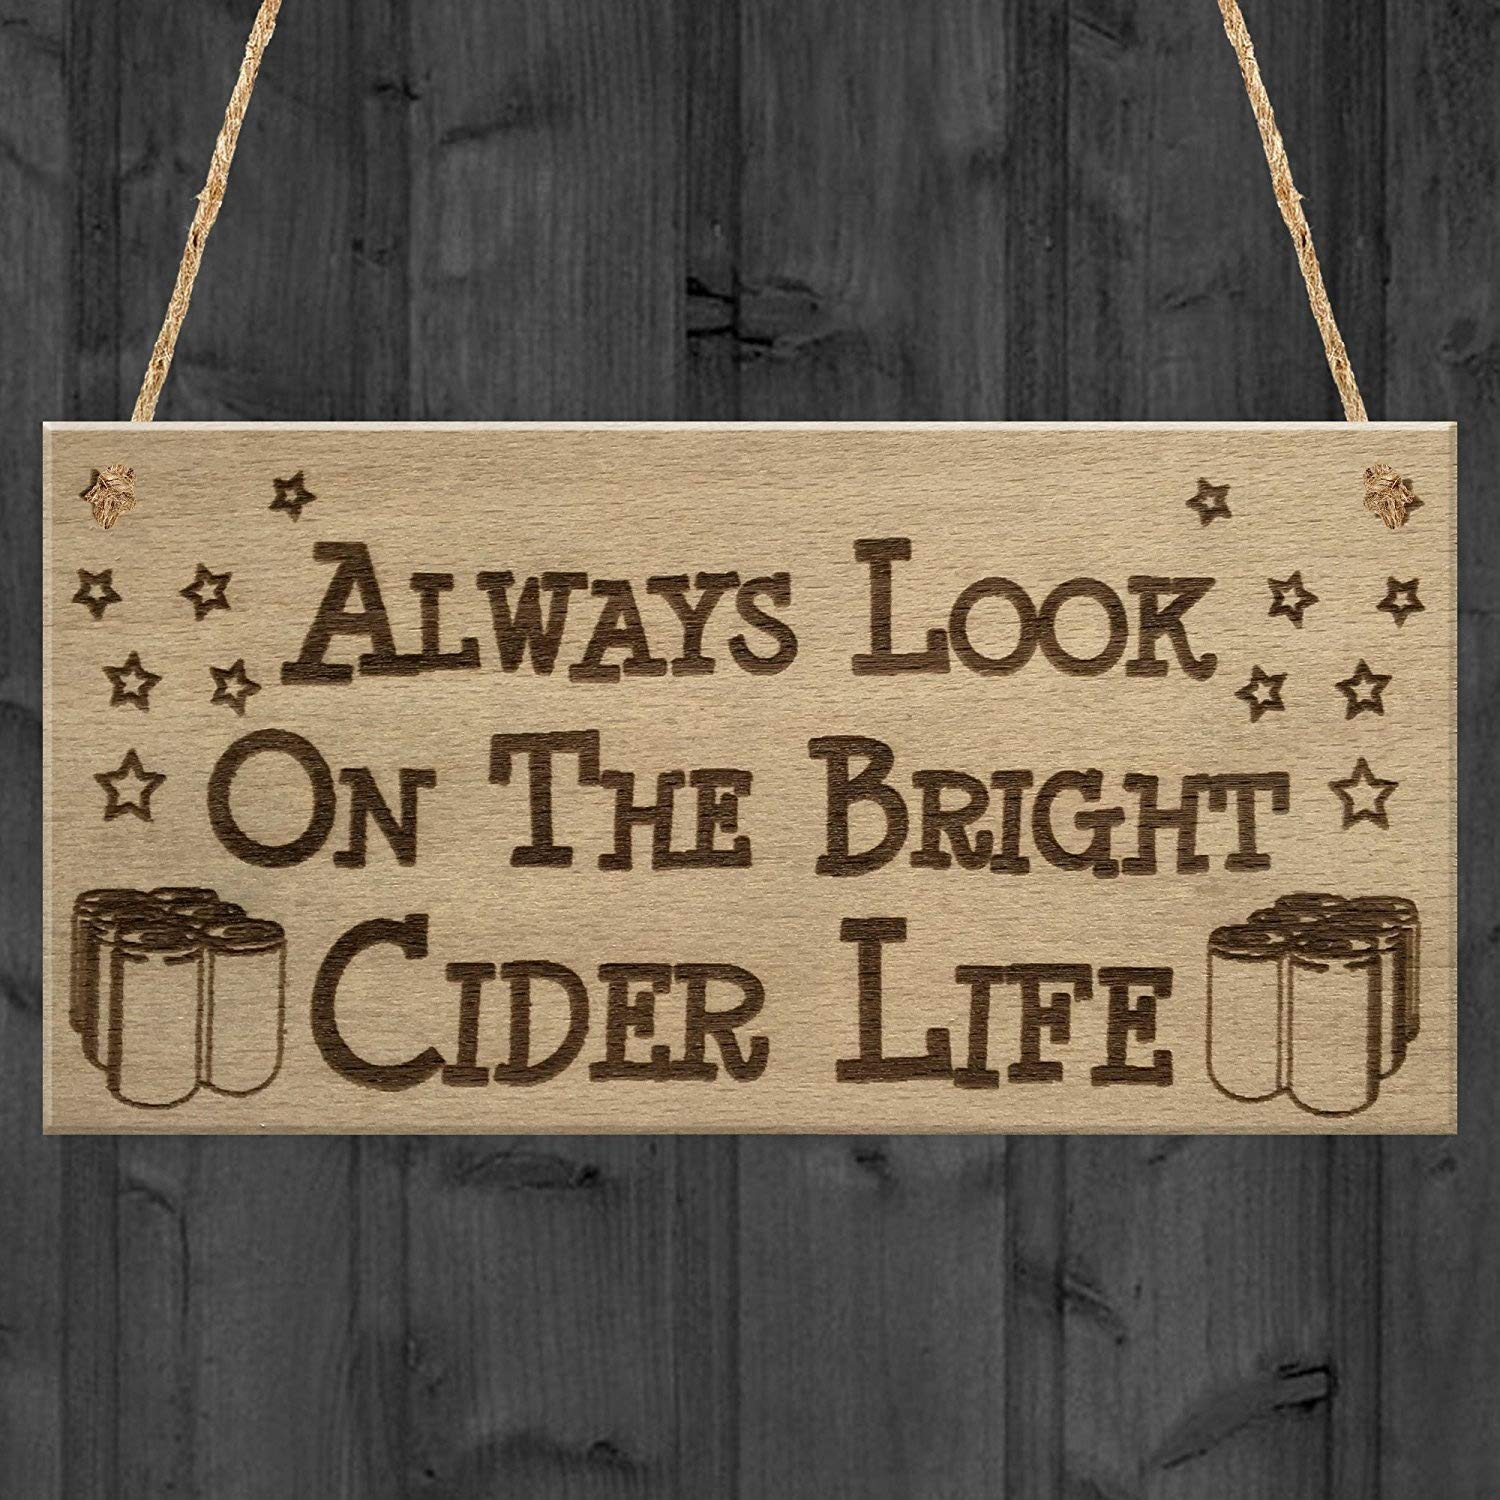 RED OCEAN Bright Cider Life Funny Alcohol Man Cave Pub Gift Hanging Plaque Home Brew Bar Sign